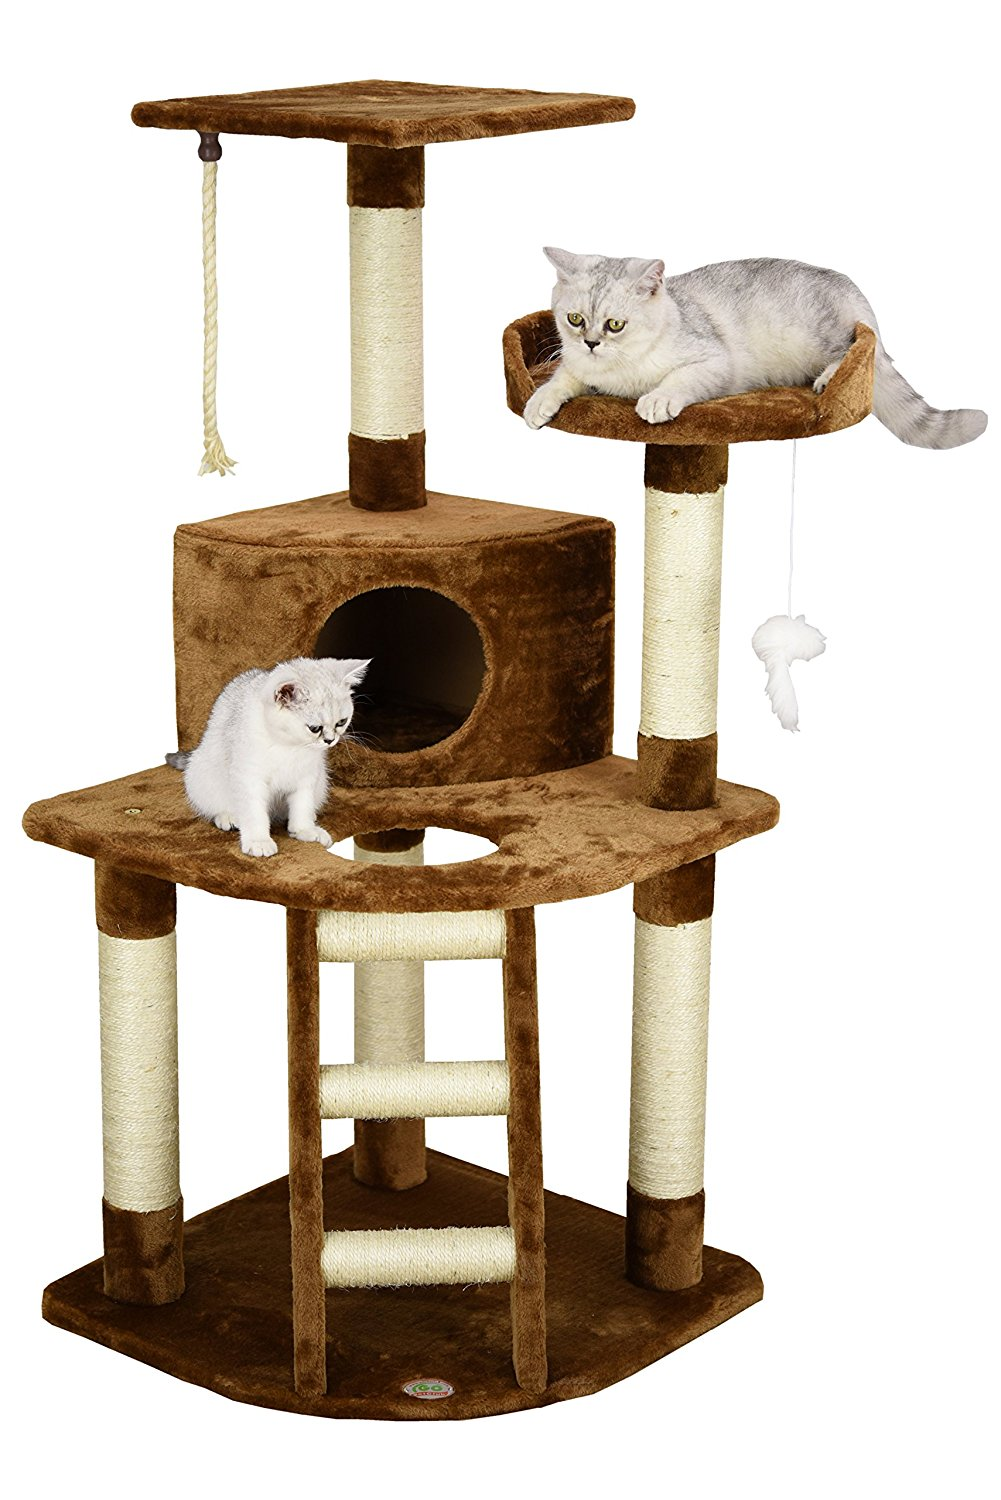 Top 5 Cat Trees for Bengals